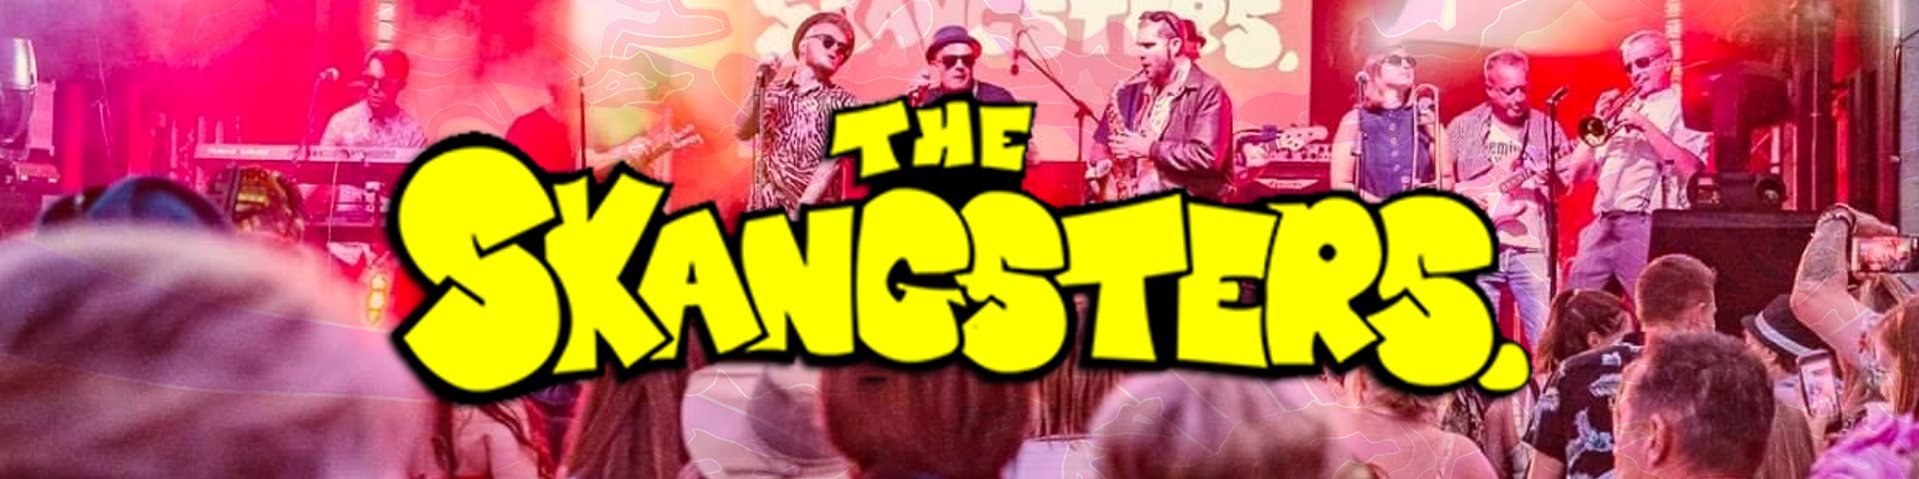 The Skangsters